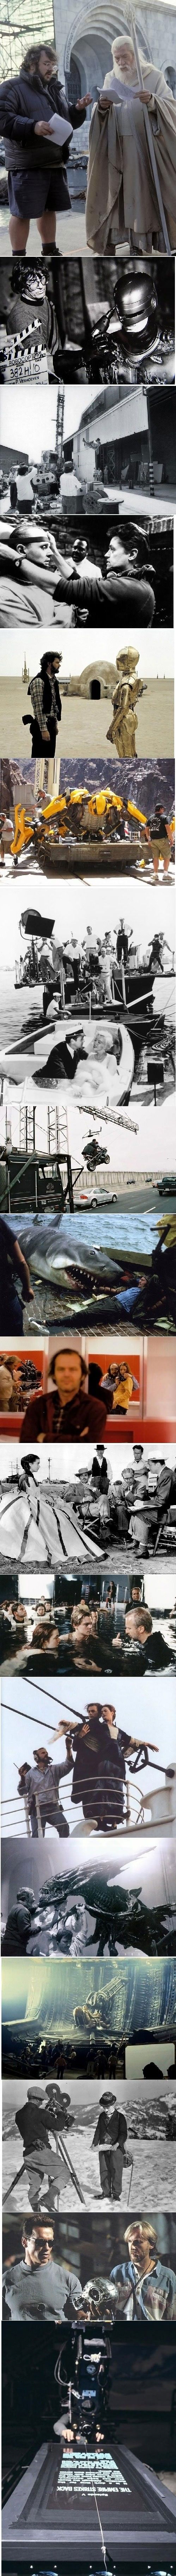 Behind the scenes of classic films